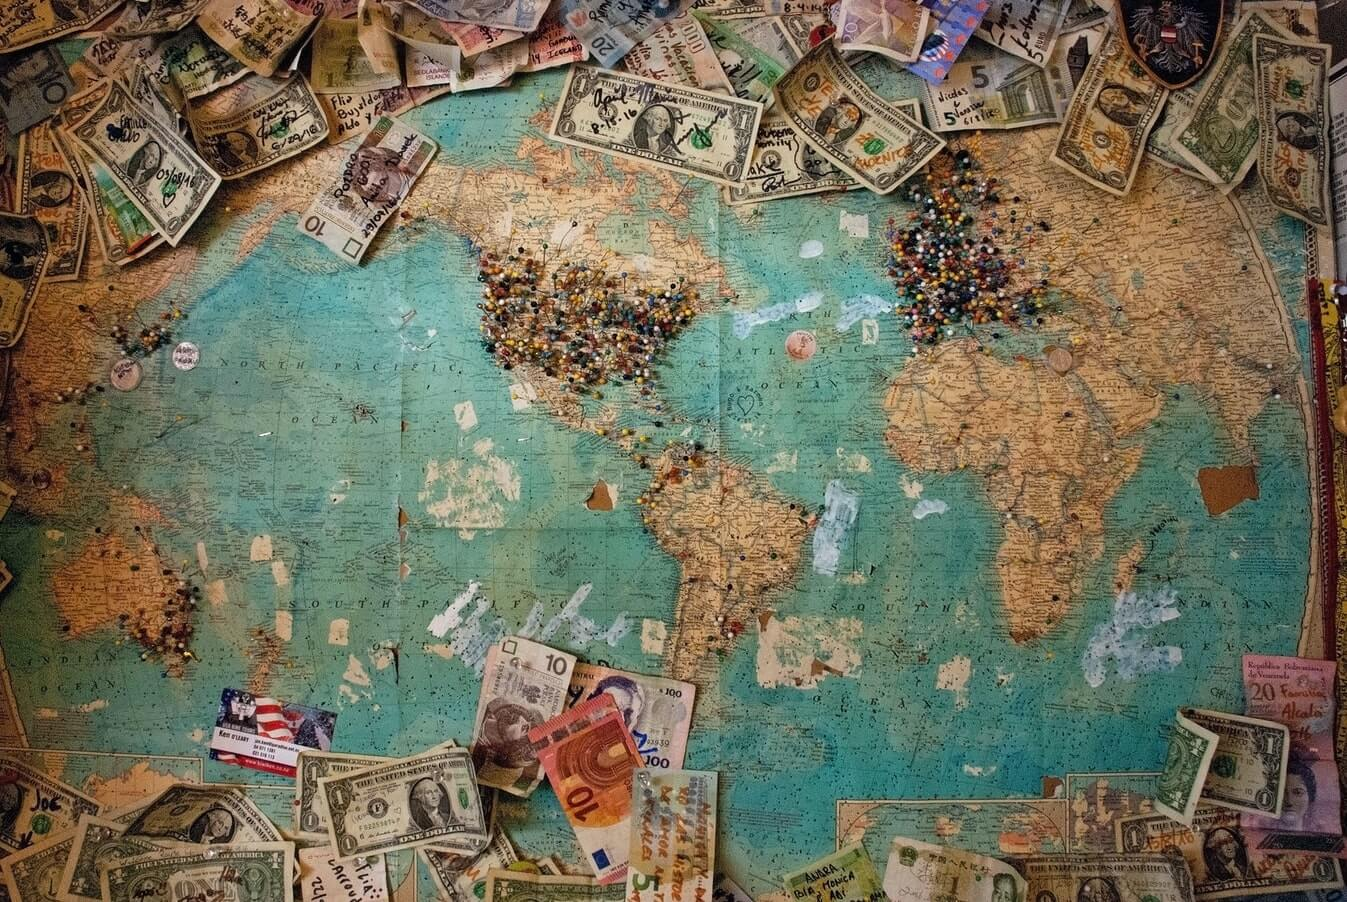 A lot of money, coins and notes on top of a world map